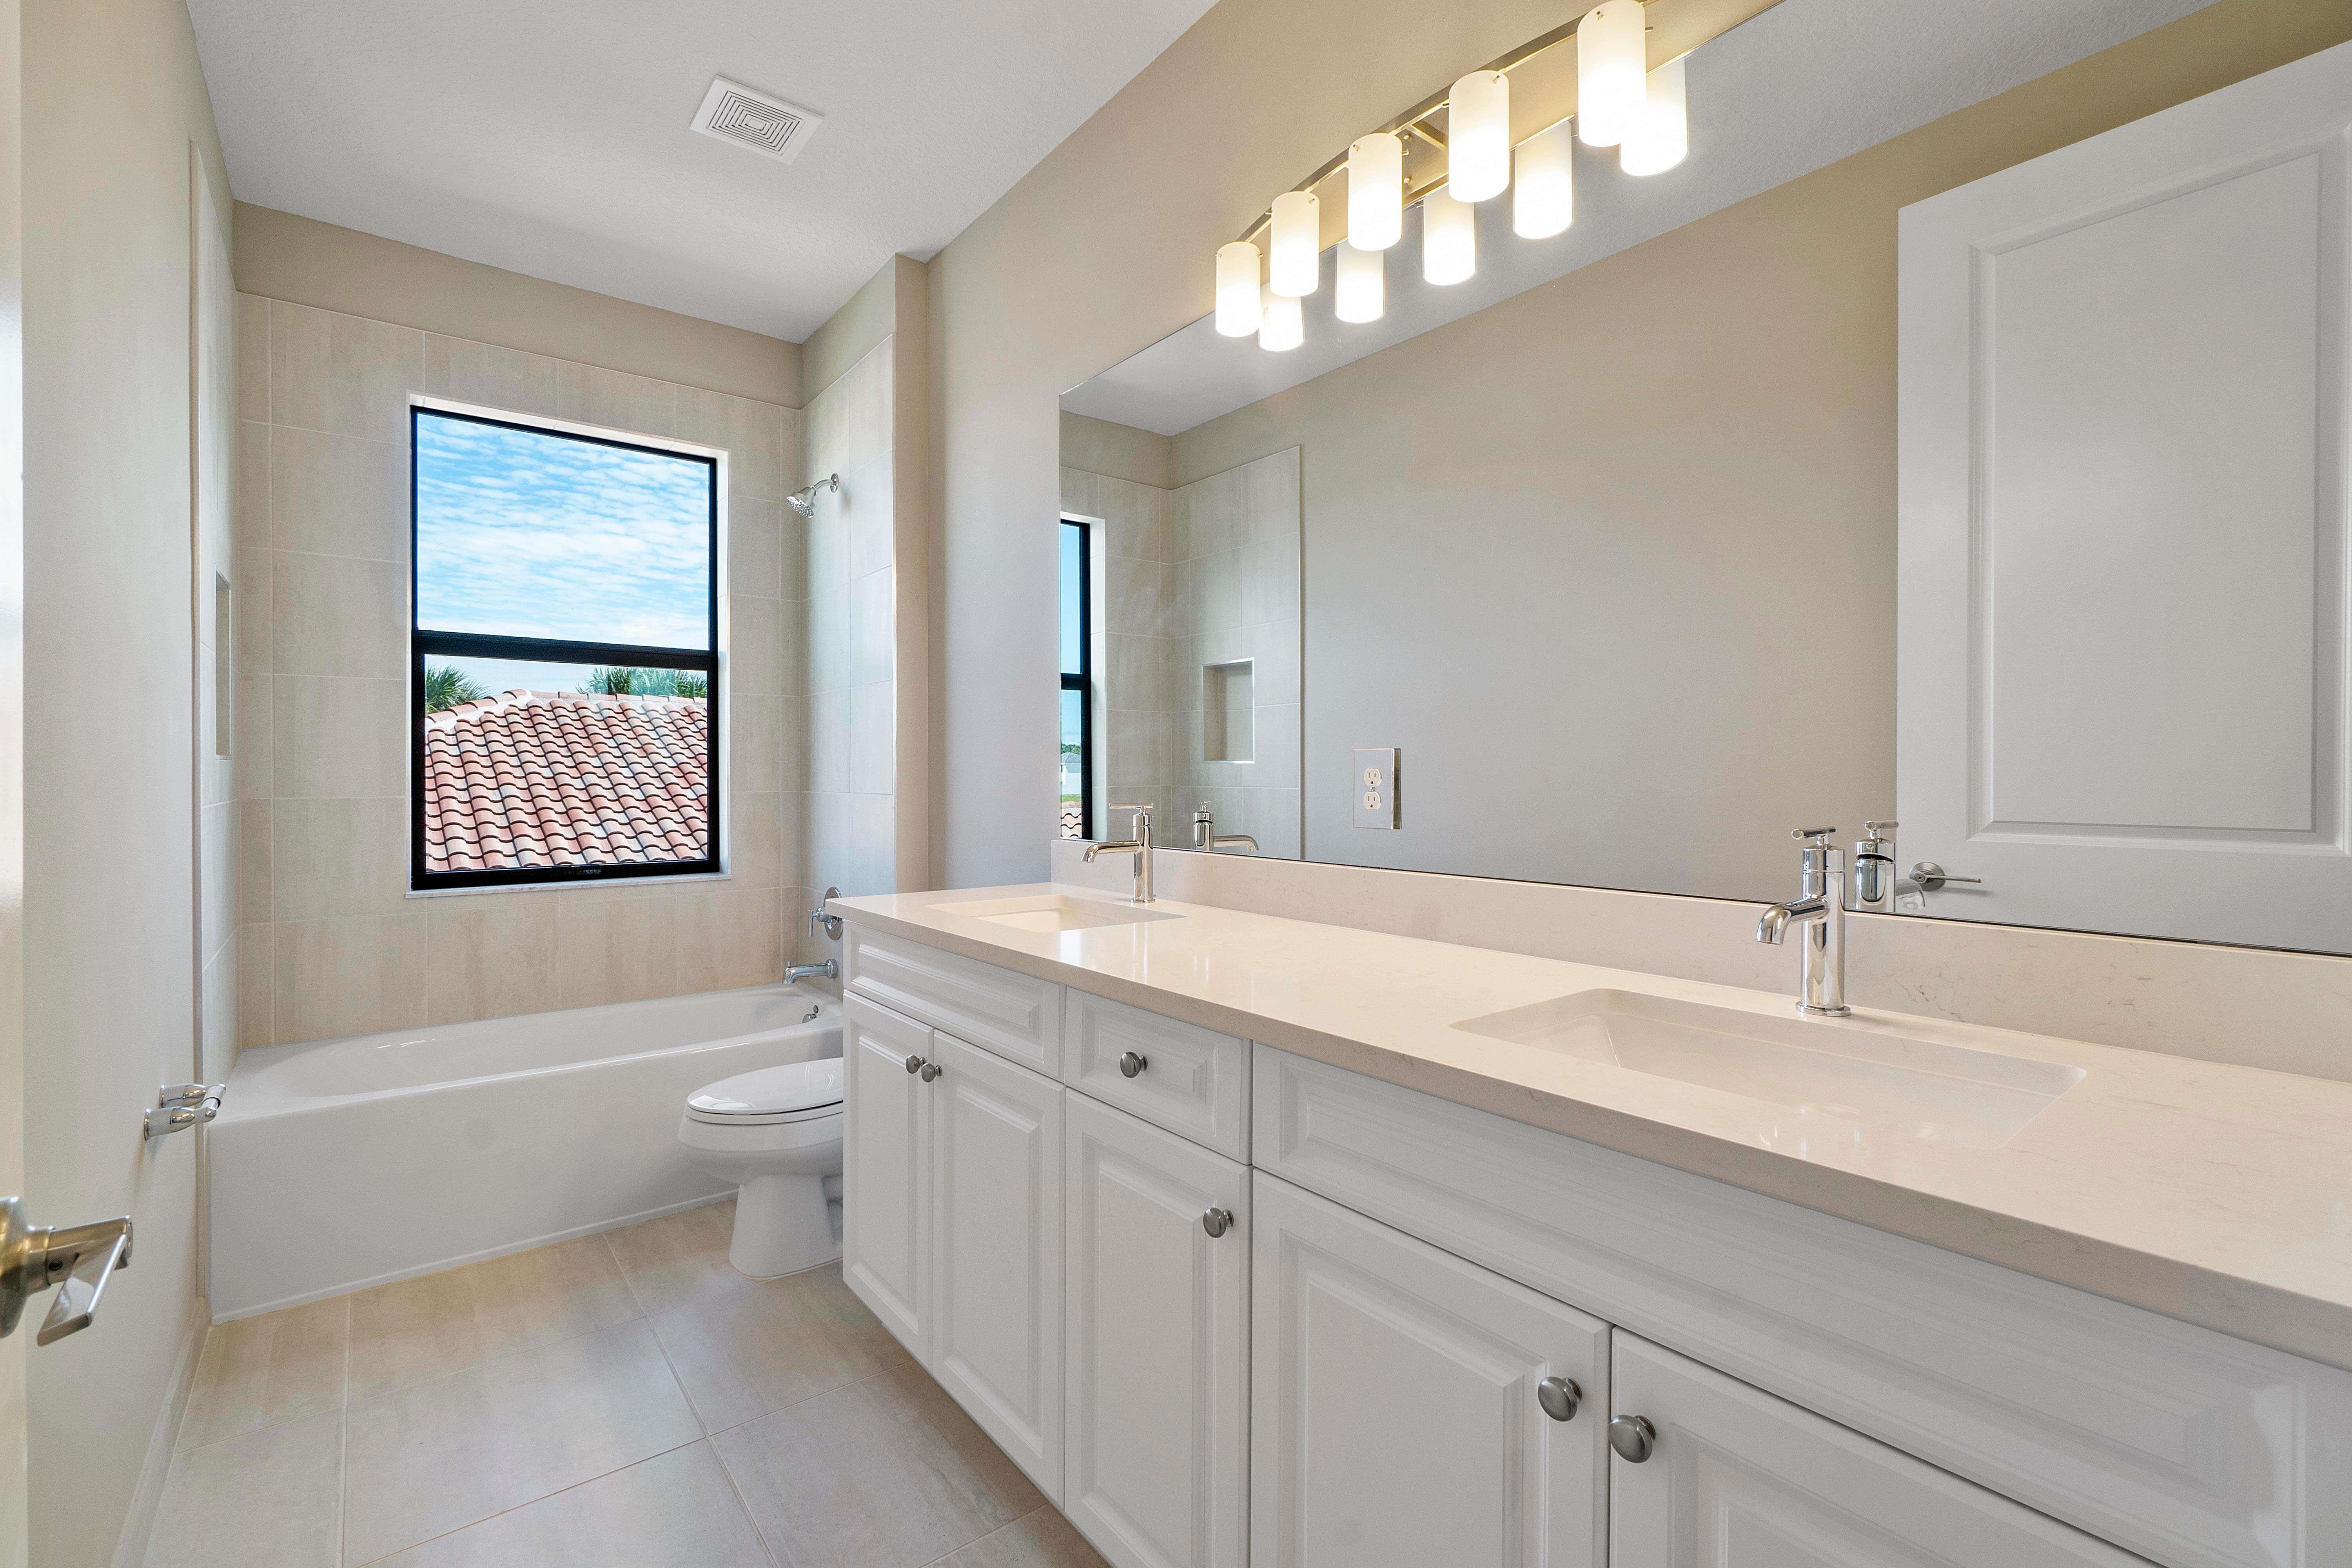 Bathroom featured in the Riviera By Akel Homes in Palm Beach County, FL